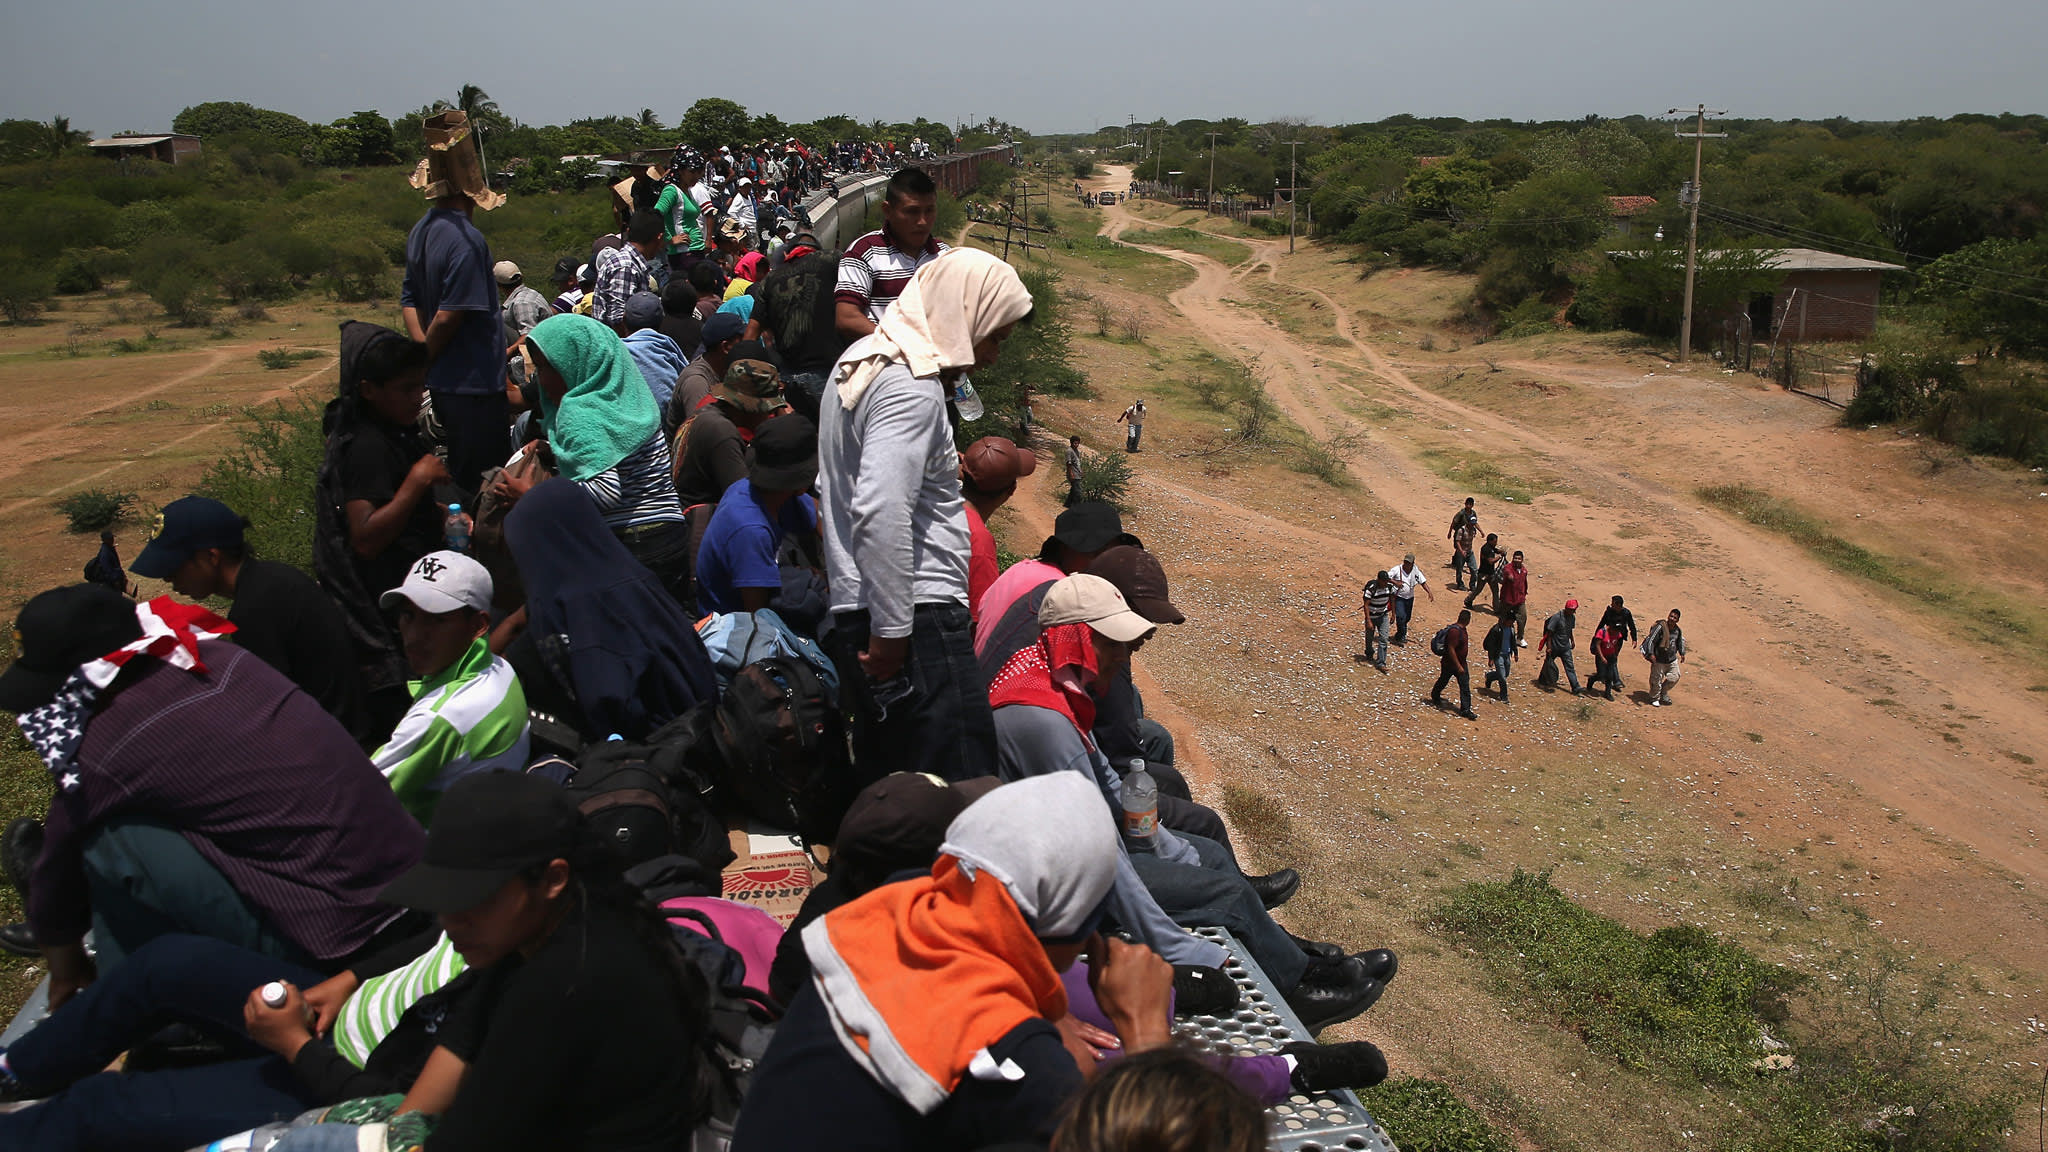 Hope and peril on Mexico's border | Financial Times